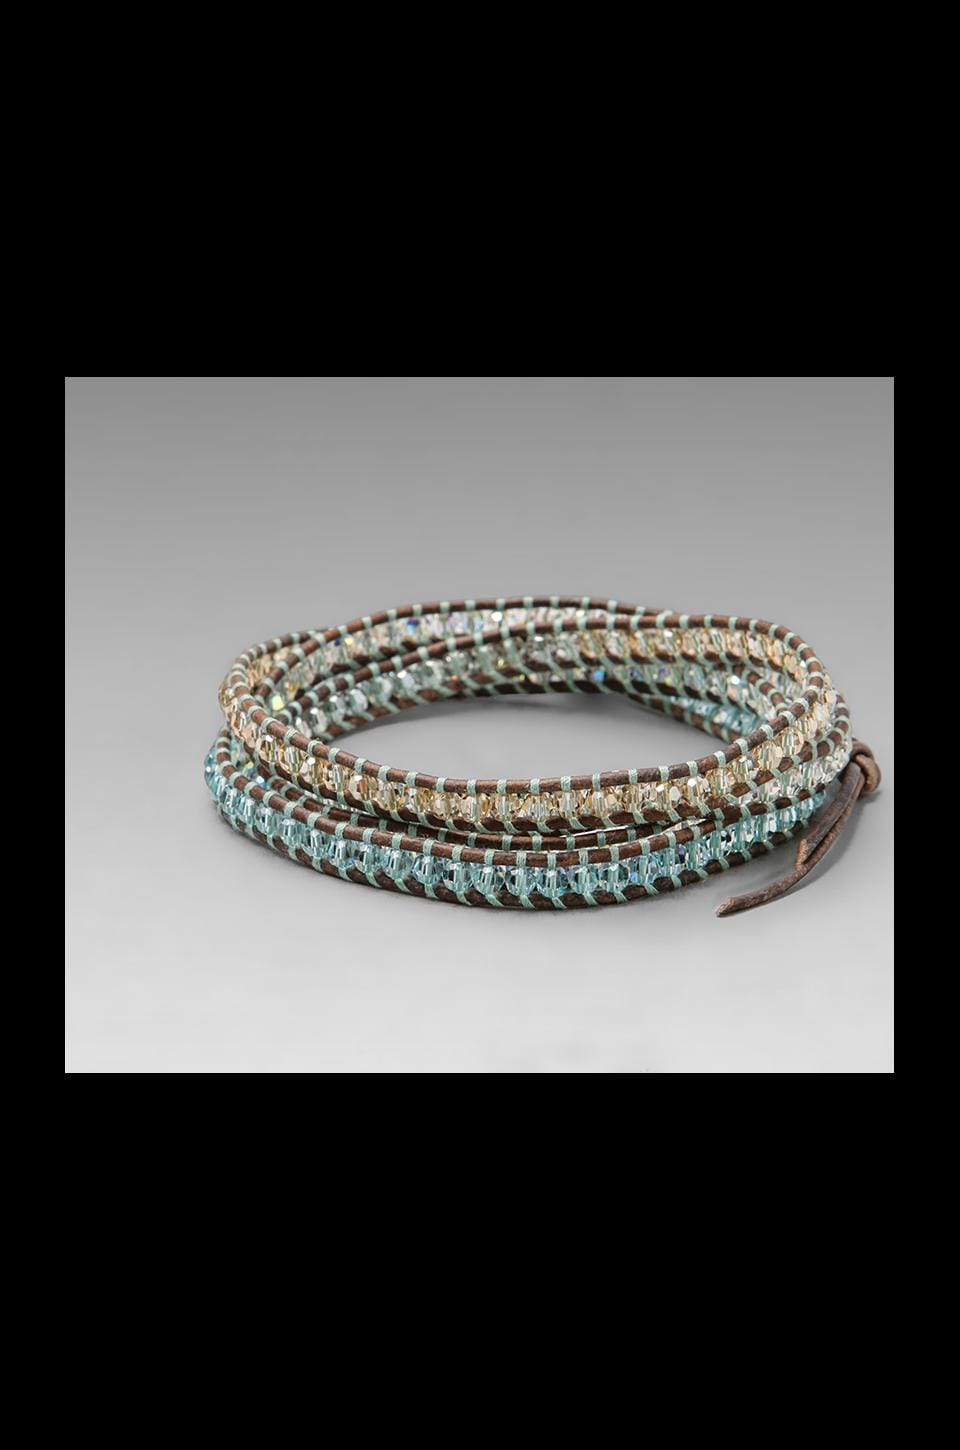 CHAN LUU Natural Leather Wrap Bracelet in Light Azore Mix